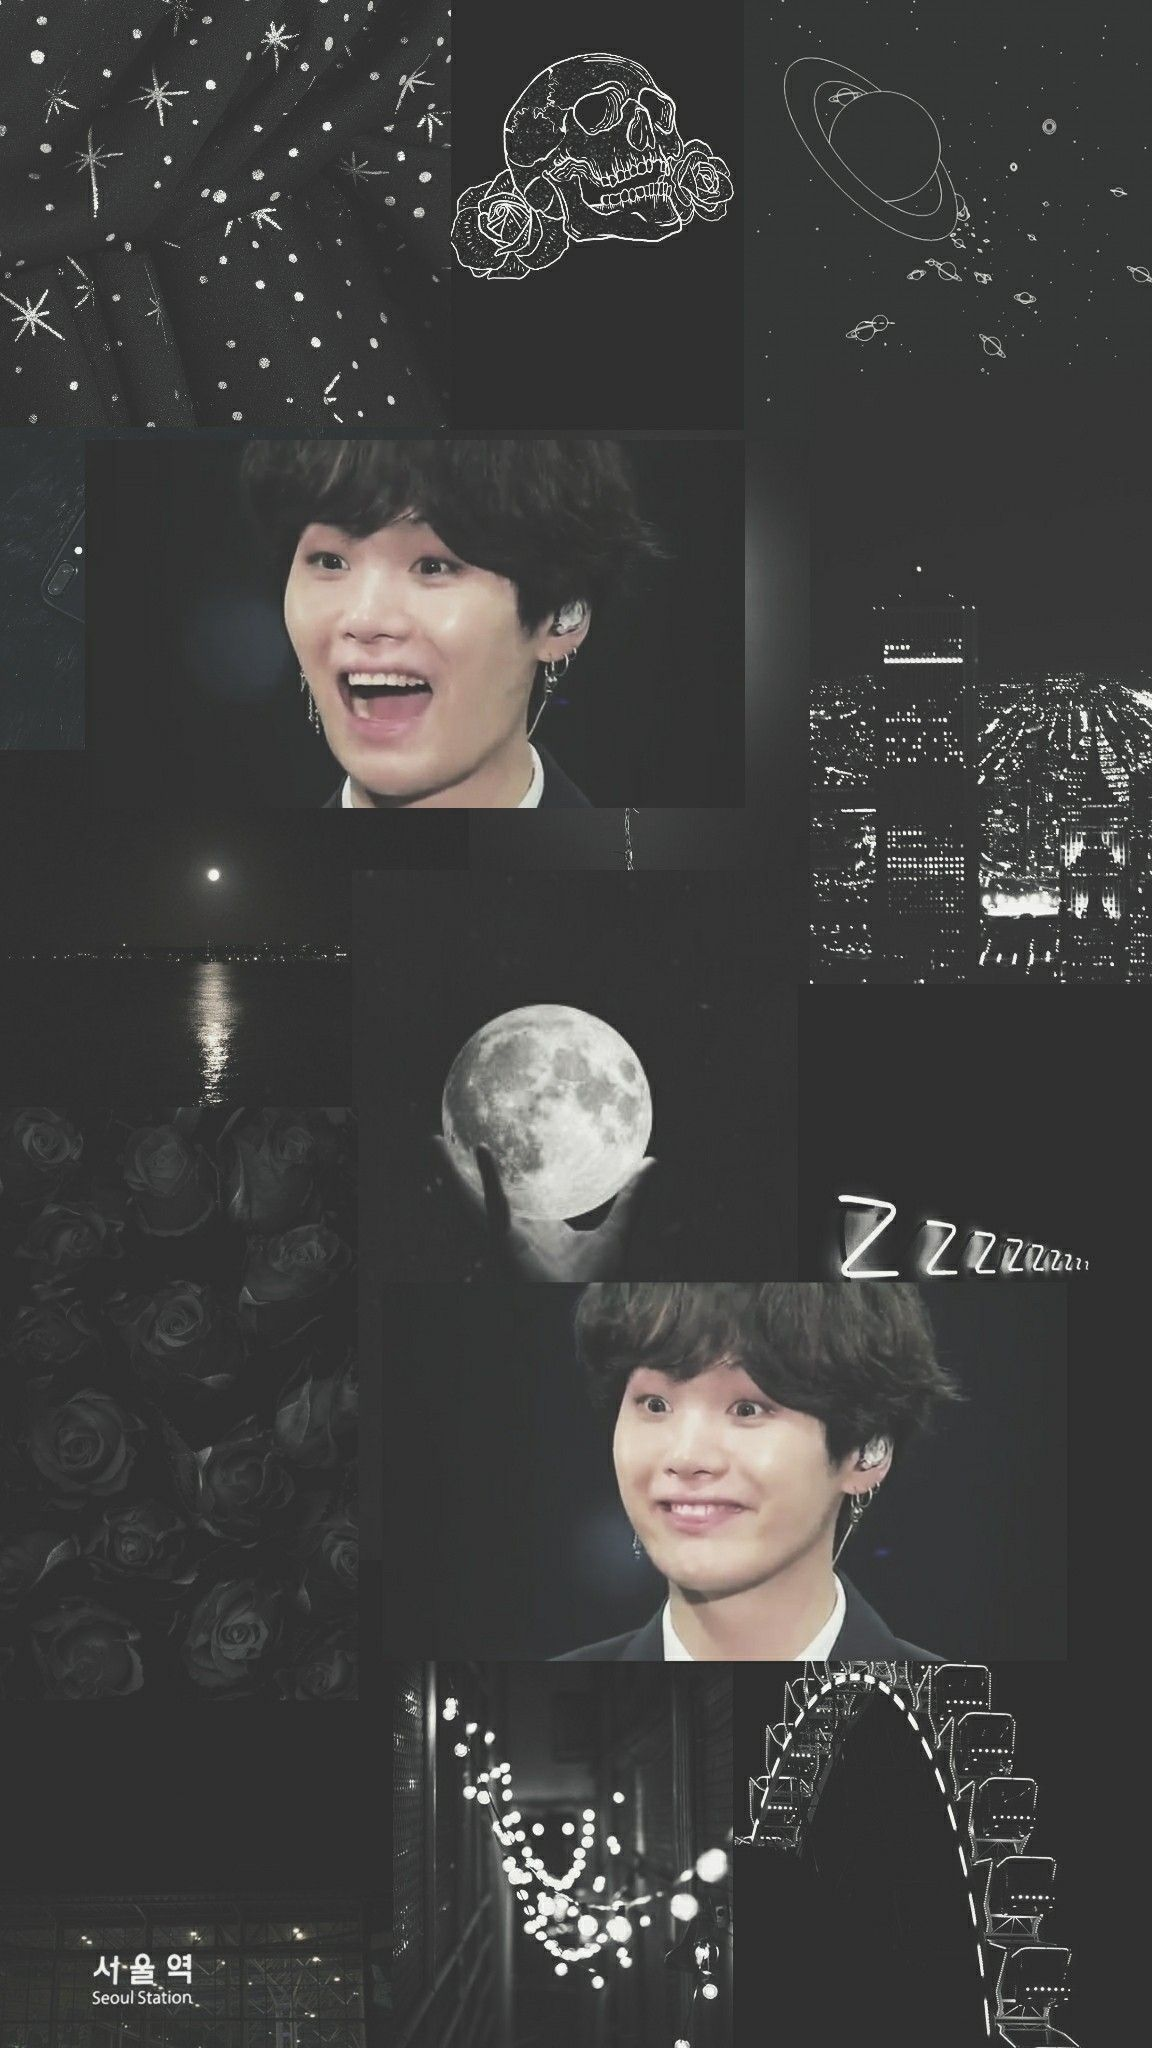 Yoongi Blue Aesthetic Wallpaper Credits To Twitter Rainboweditsz Yoongi Suga Wallpaper Iphone Wallpaper Lucu Fotografi Malam